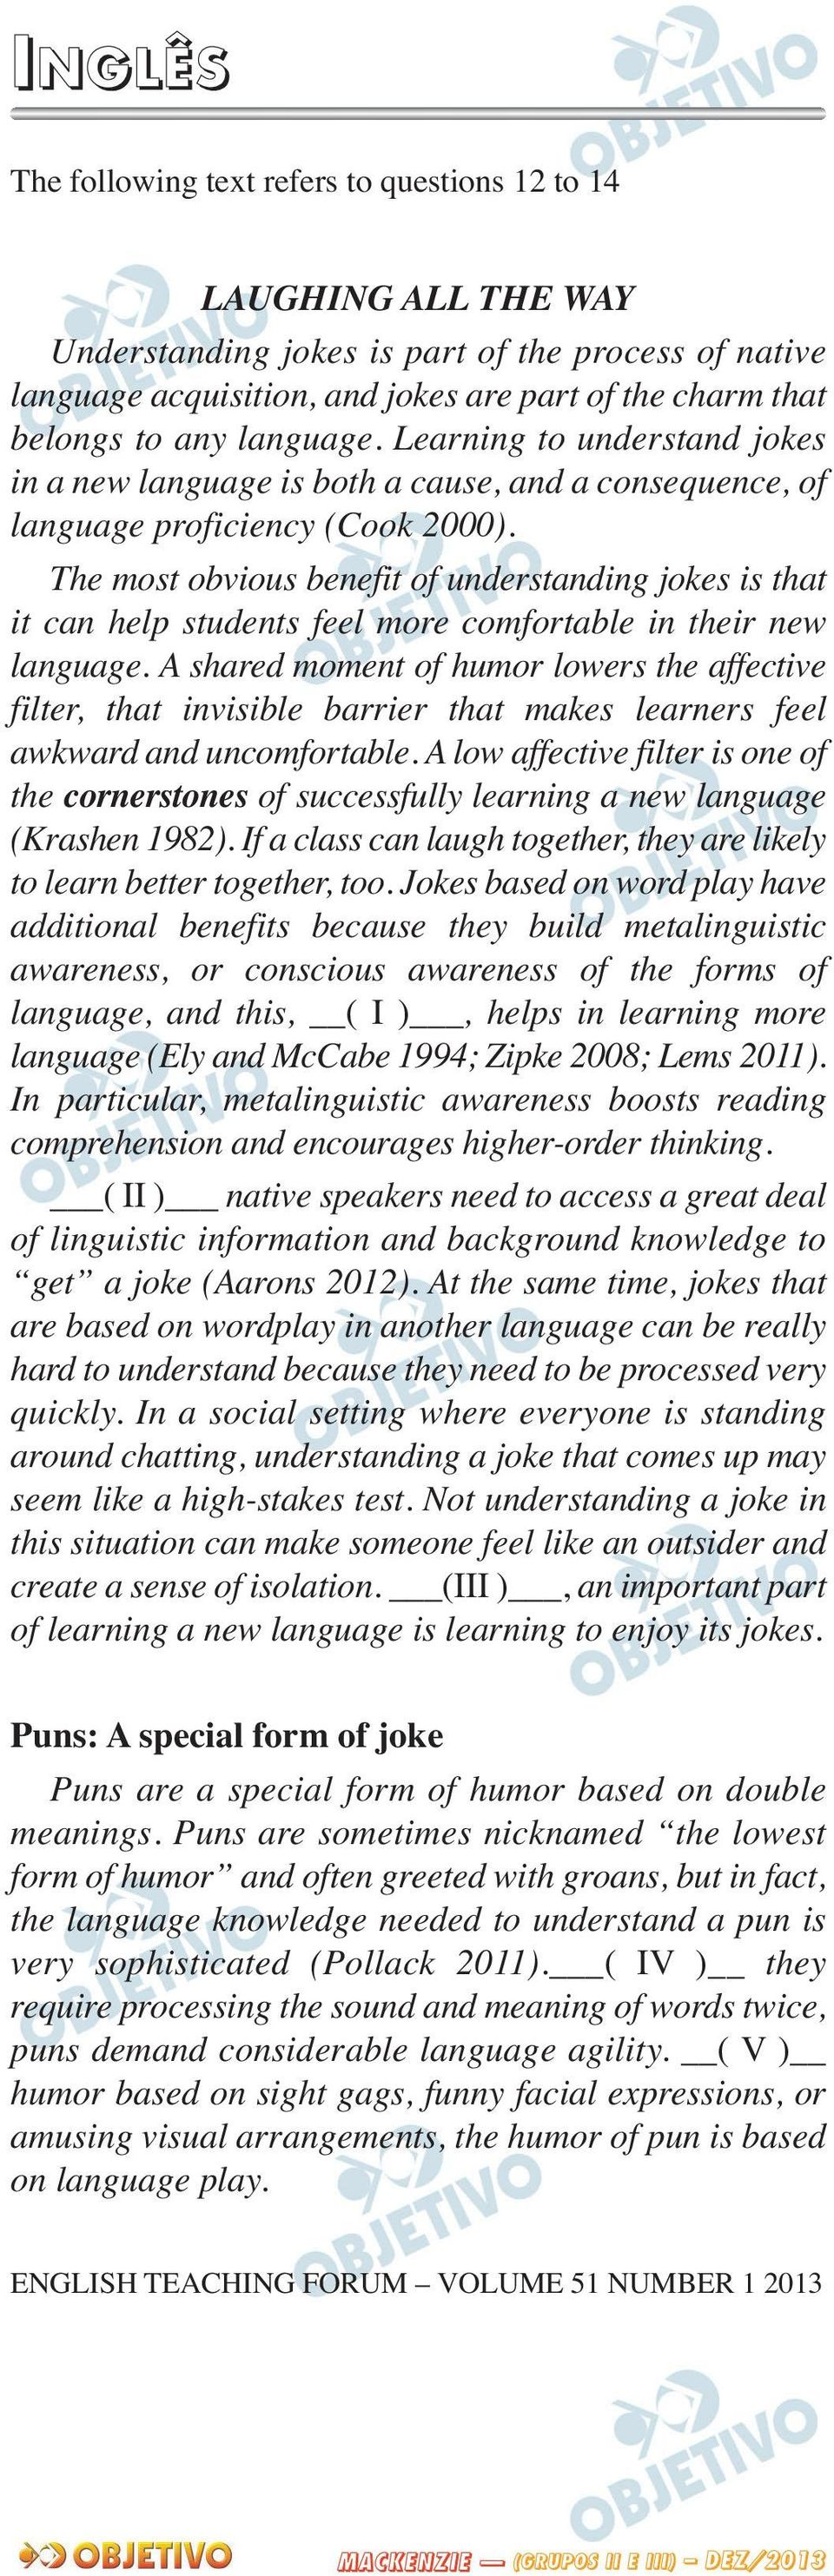 The most obvious benefit of understanding jokes is that it can help students feel more comfortable in their new language.